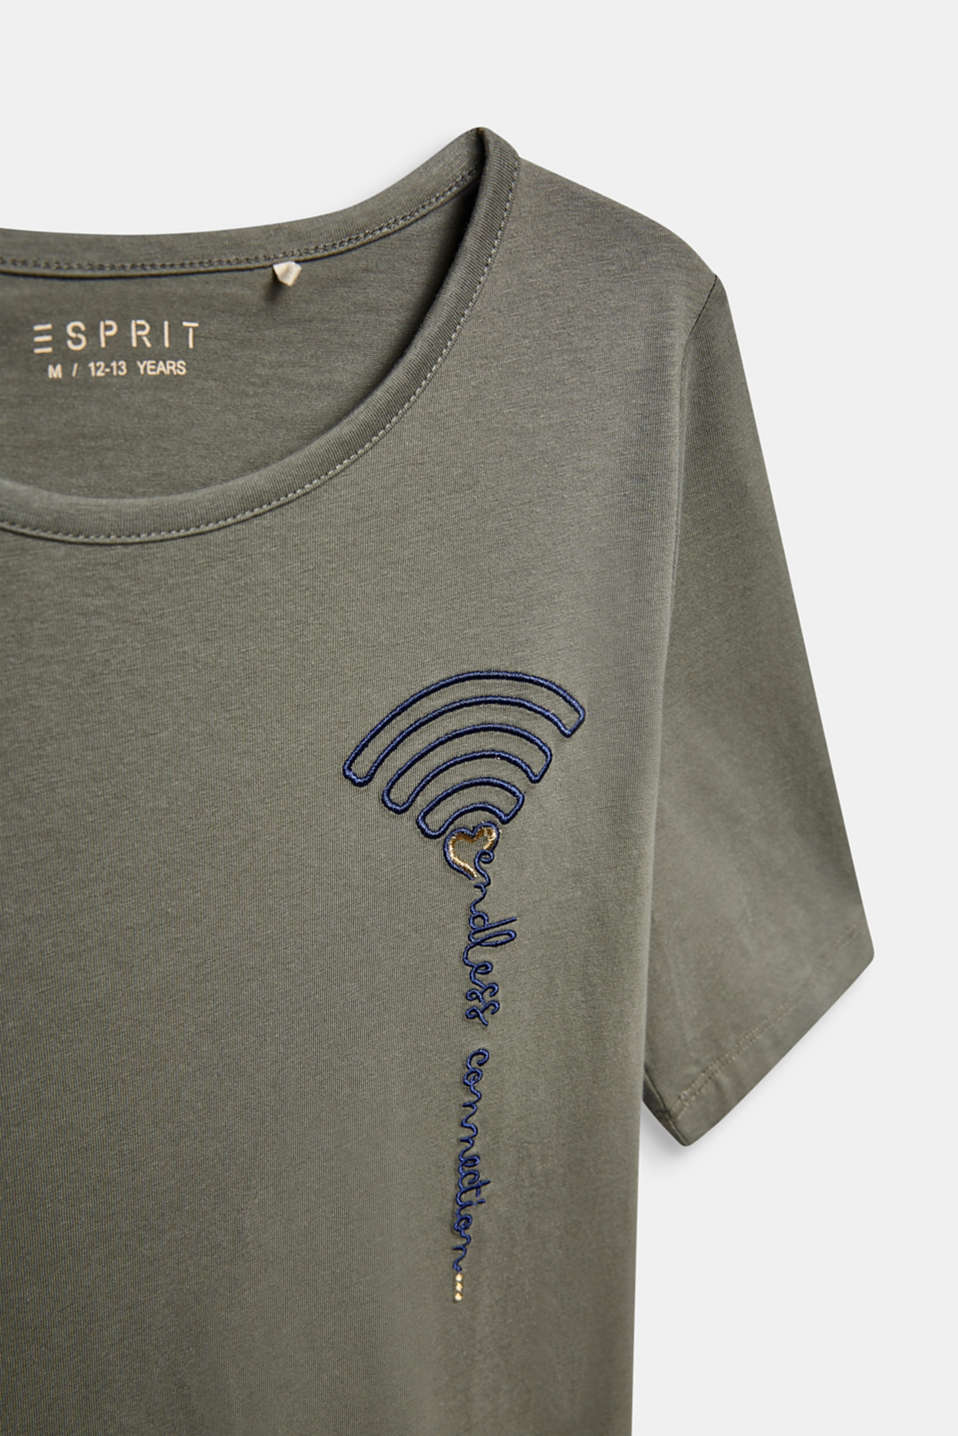 T-shirt with WiFi embroidery, stretch cotton, LCKAKI, detail image number 2